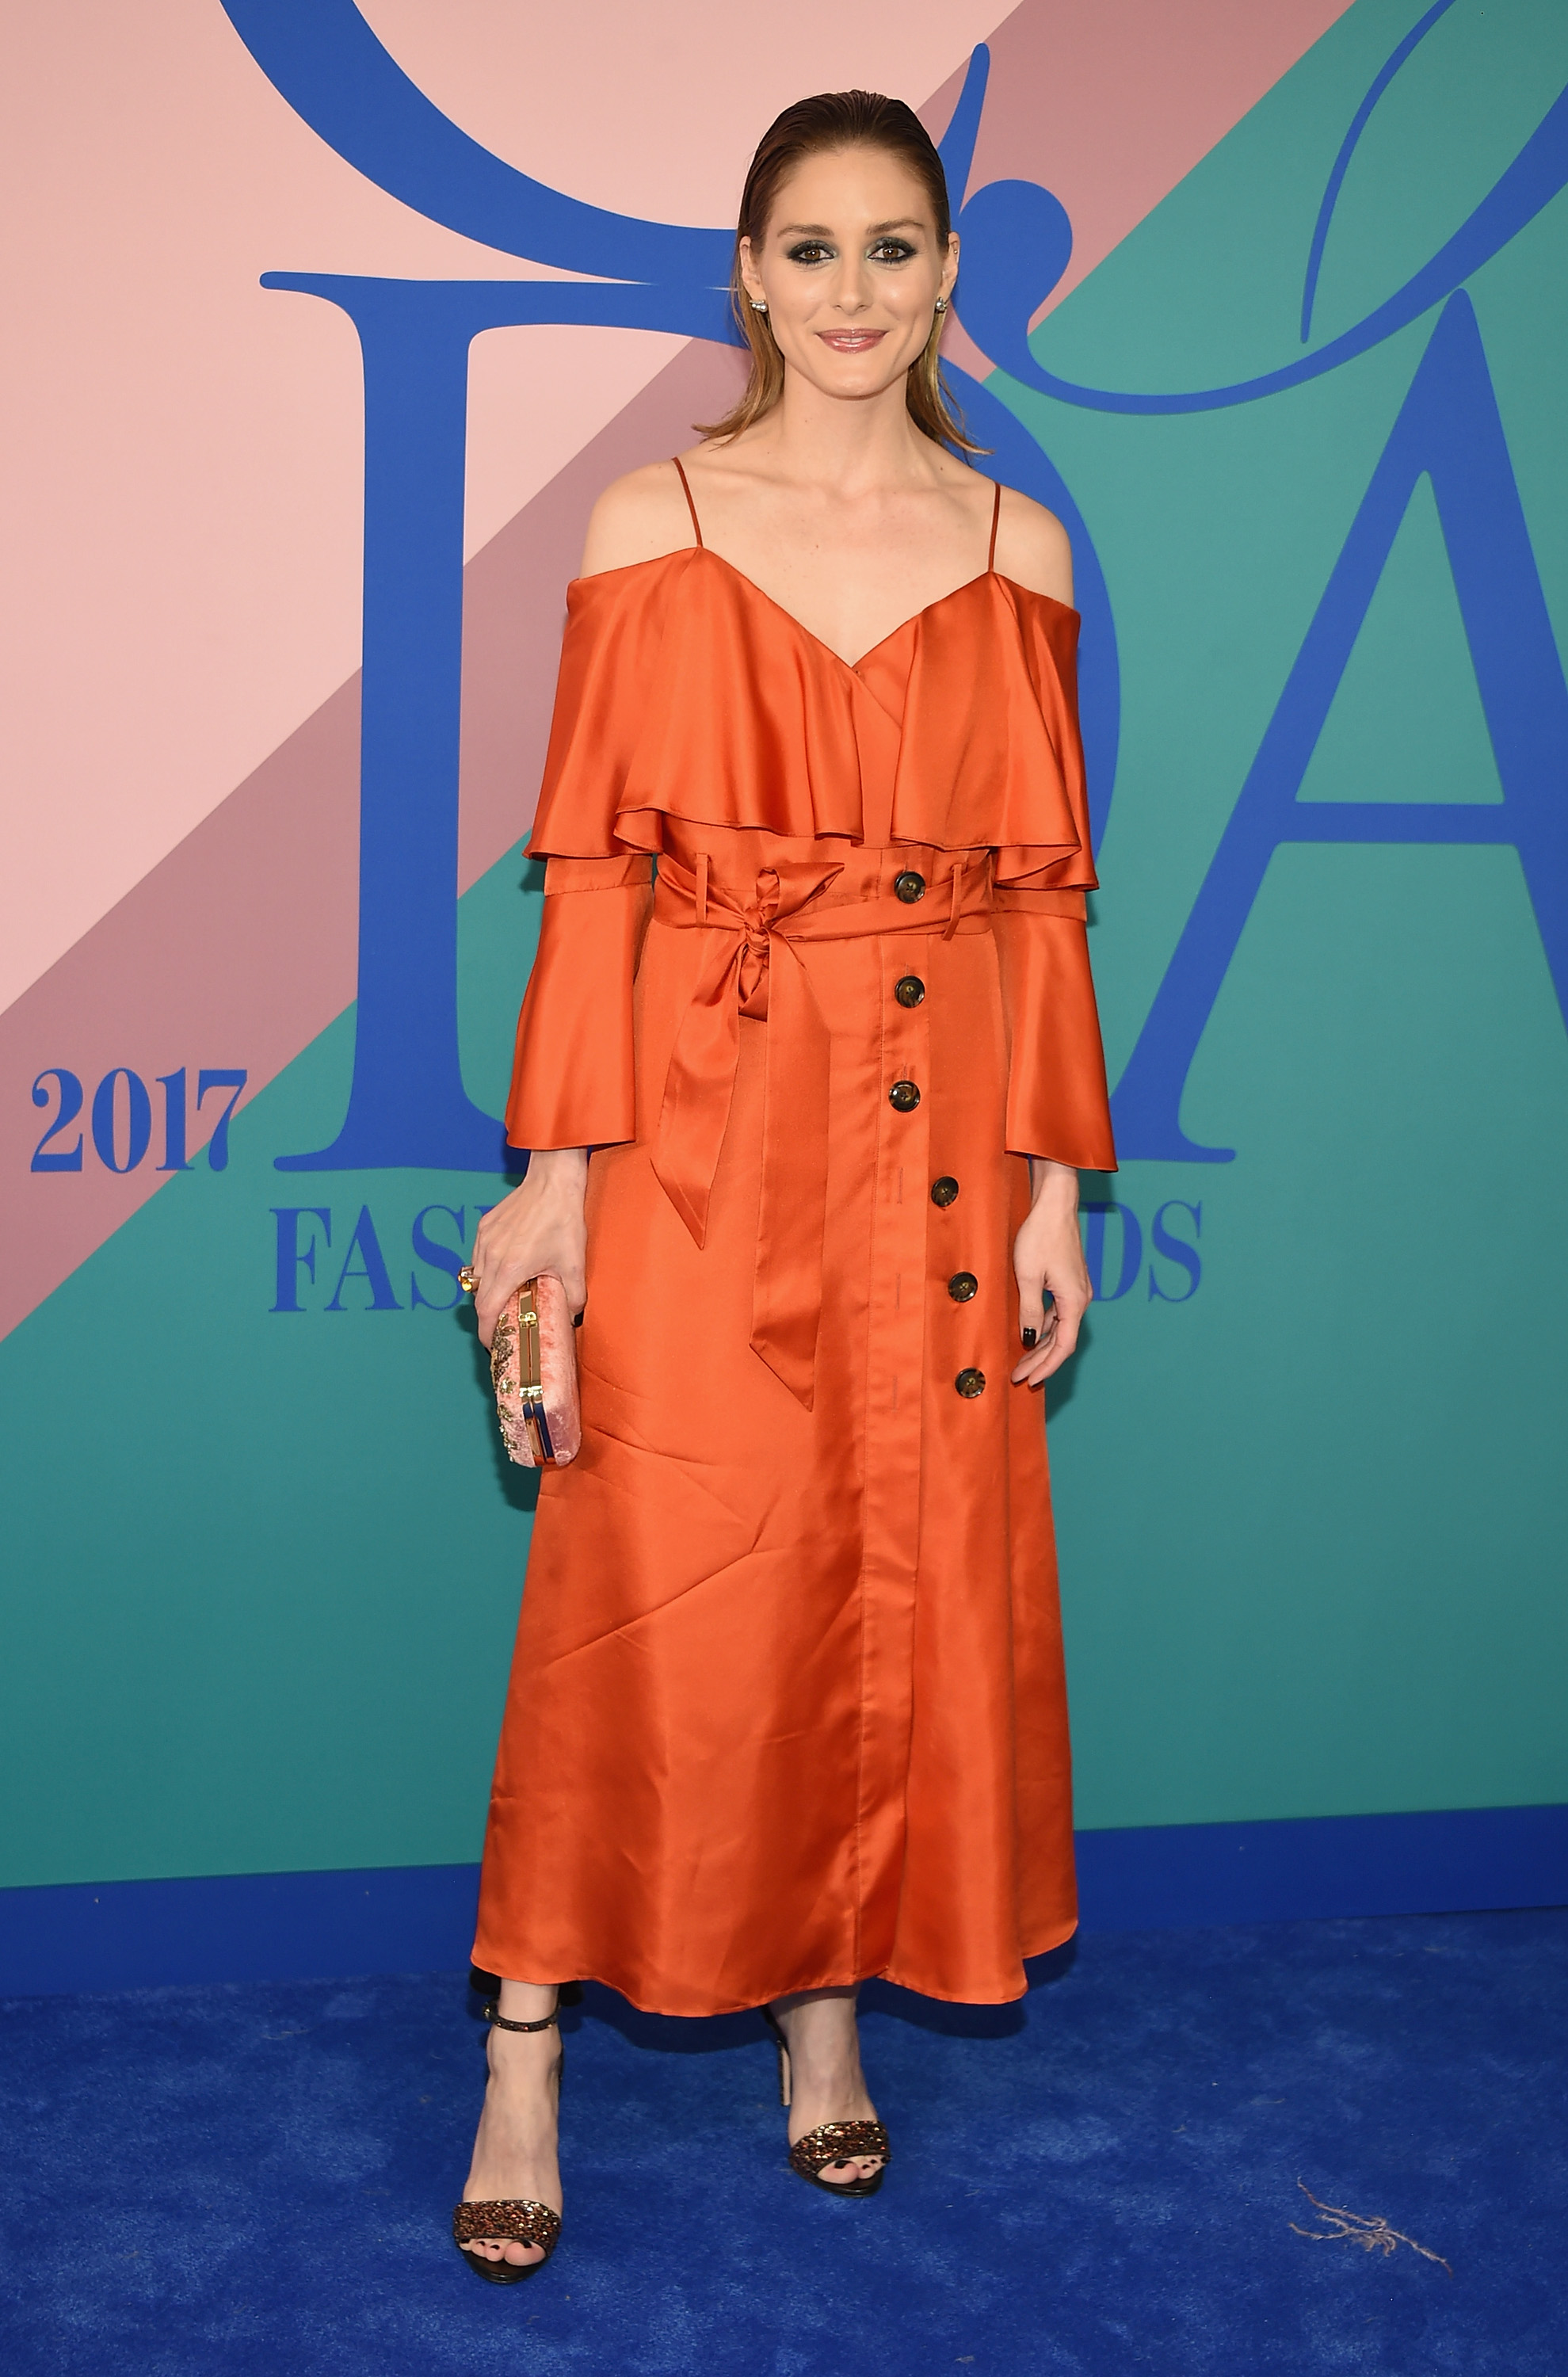 NEW YORK, NY - JUNE 05:  Olivia Palermo attends the 2017 CFDA Fashion Awards at Hammerstein Ballroom on June 5, 2017 in New York City.  (Photo by Dimitrios Kambouris/Getty Images)